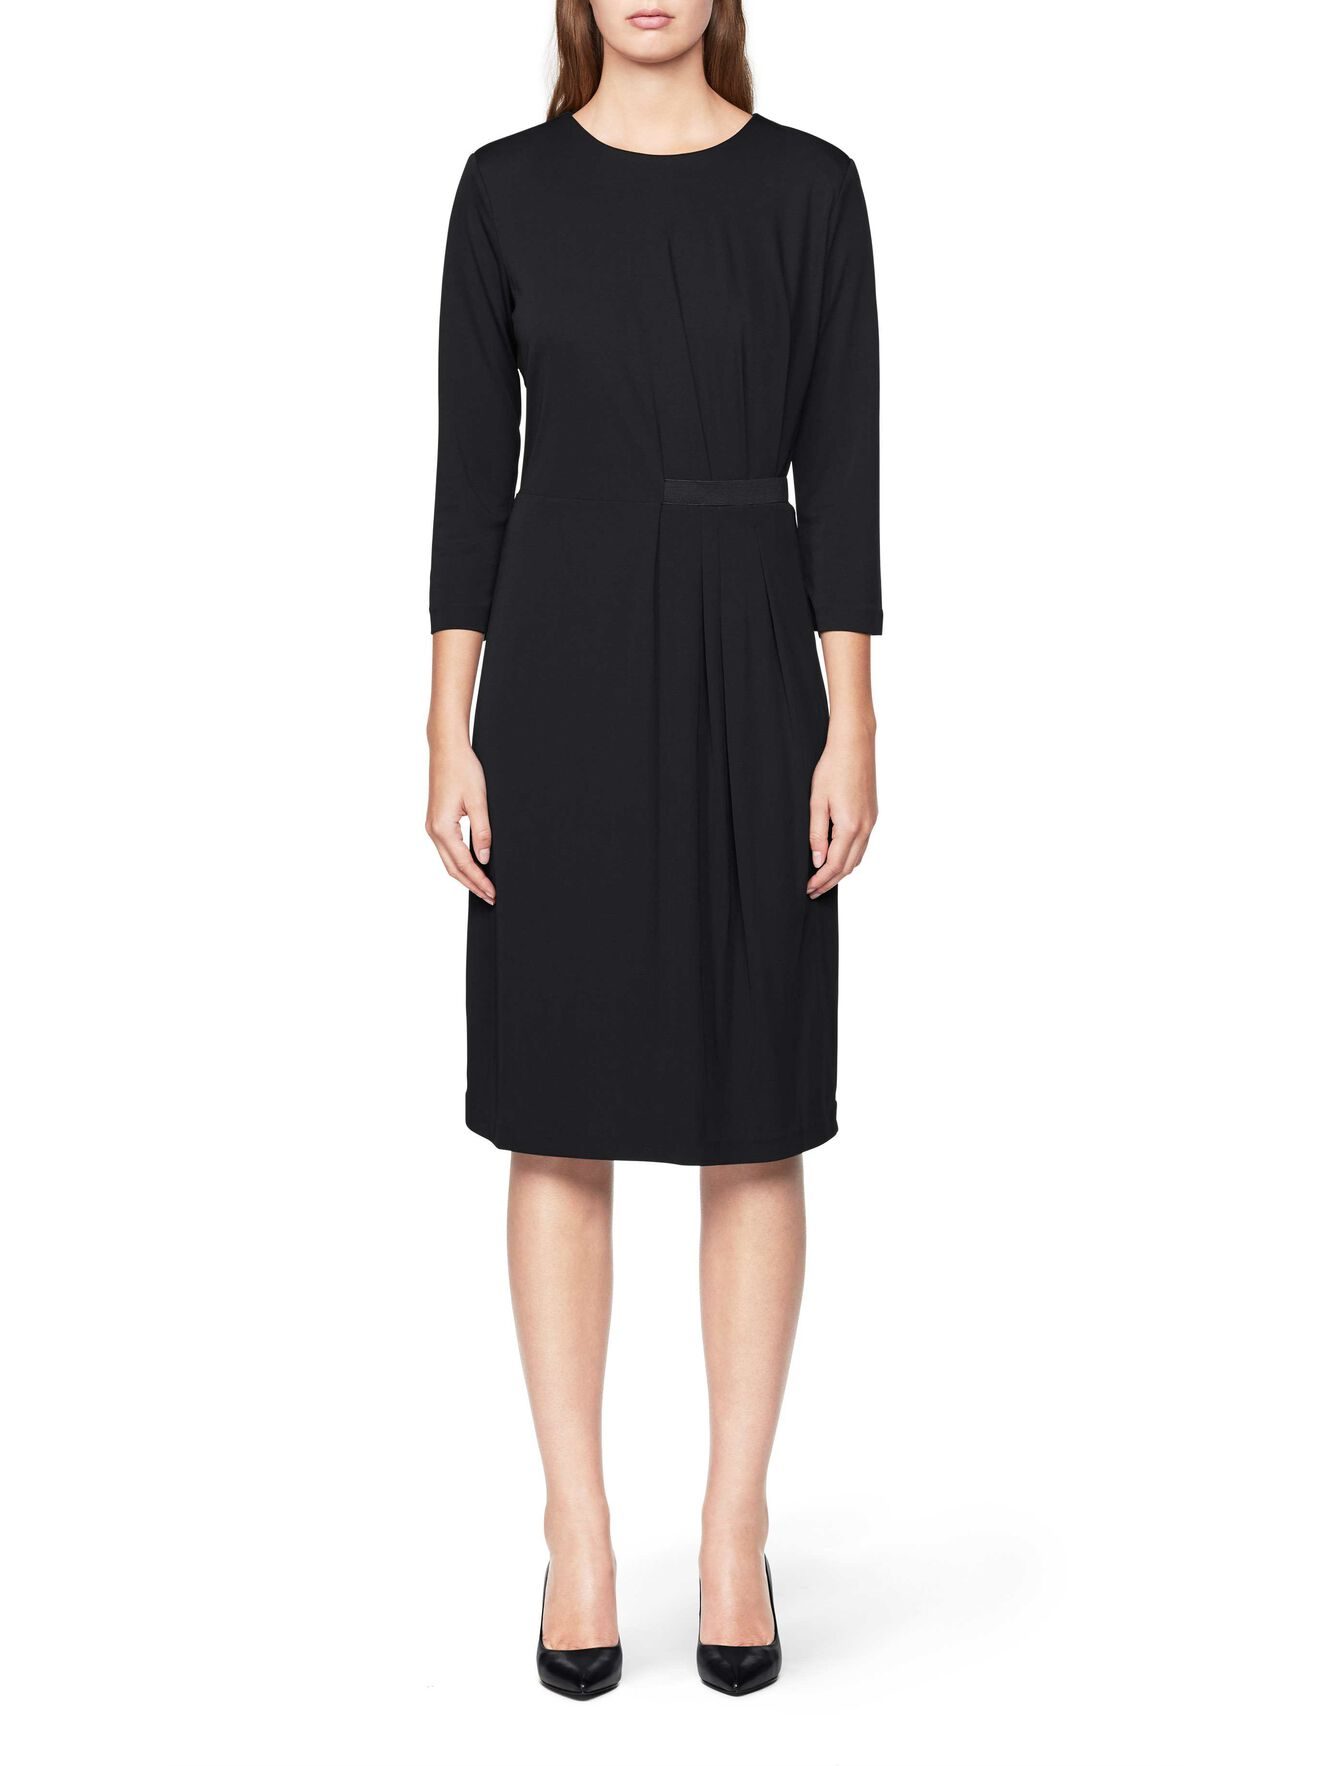 Paloma Dress in Midnight Black from Tiger of Sweden